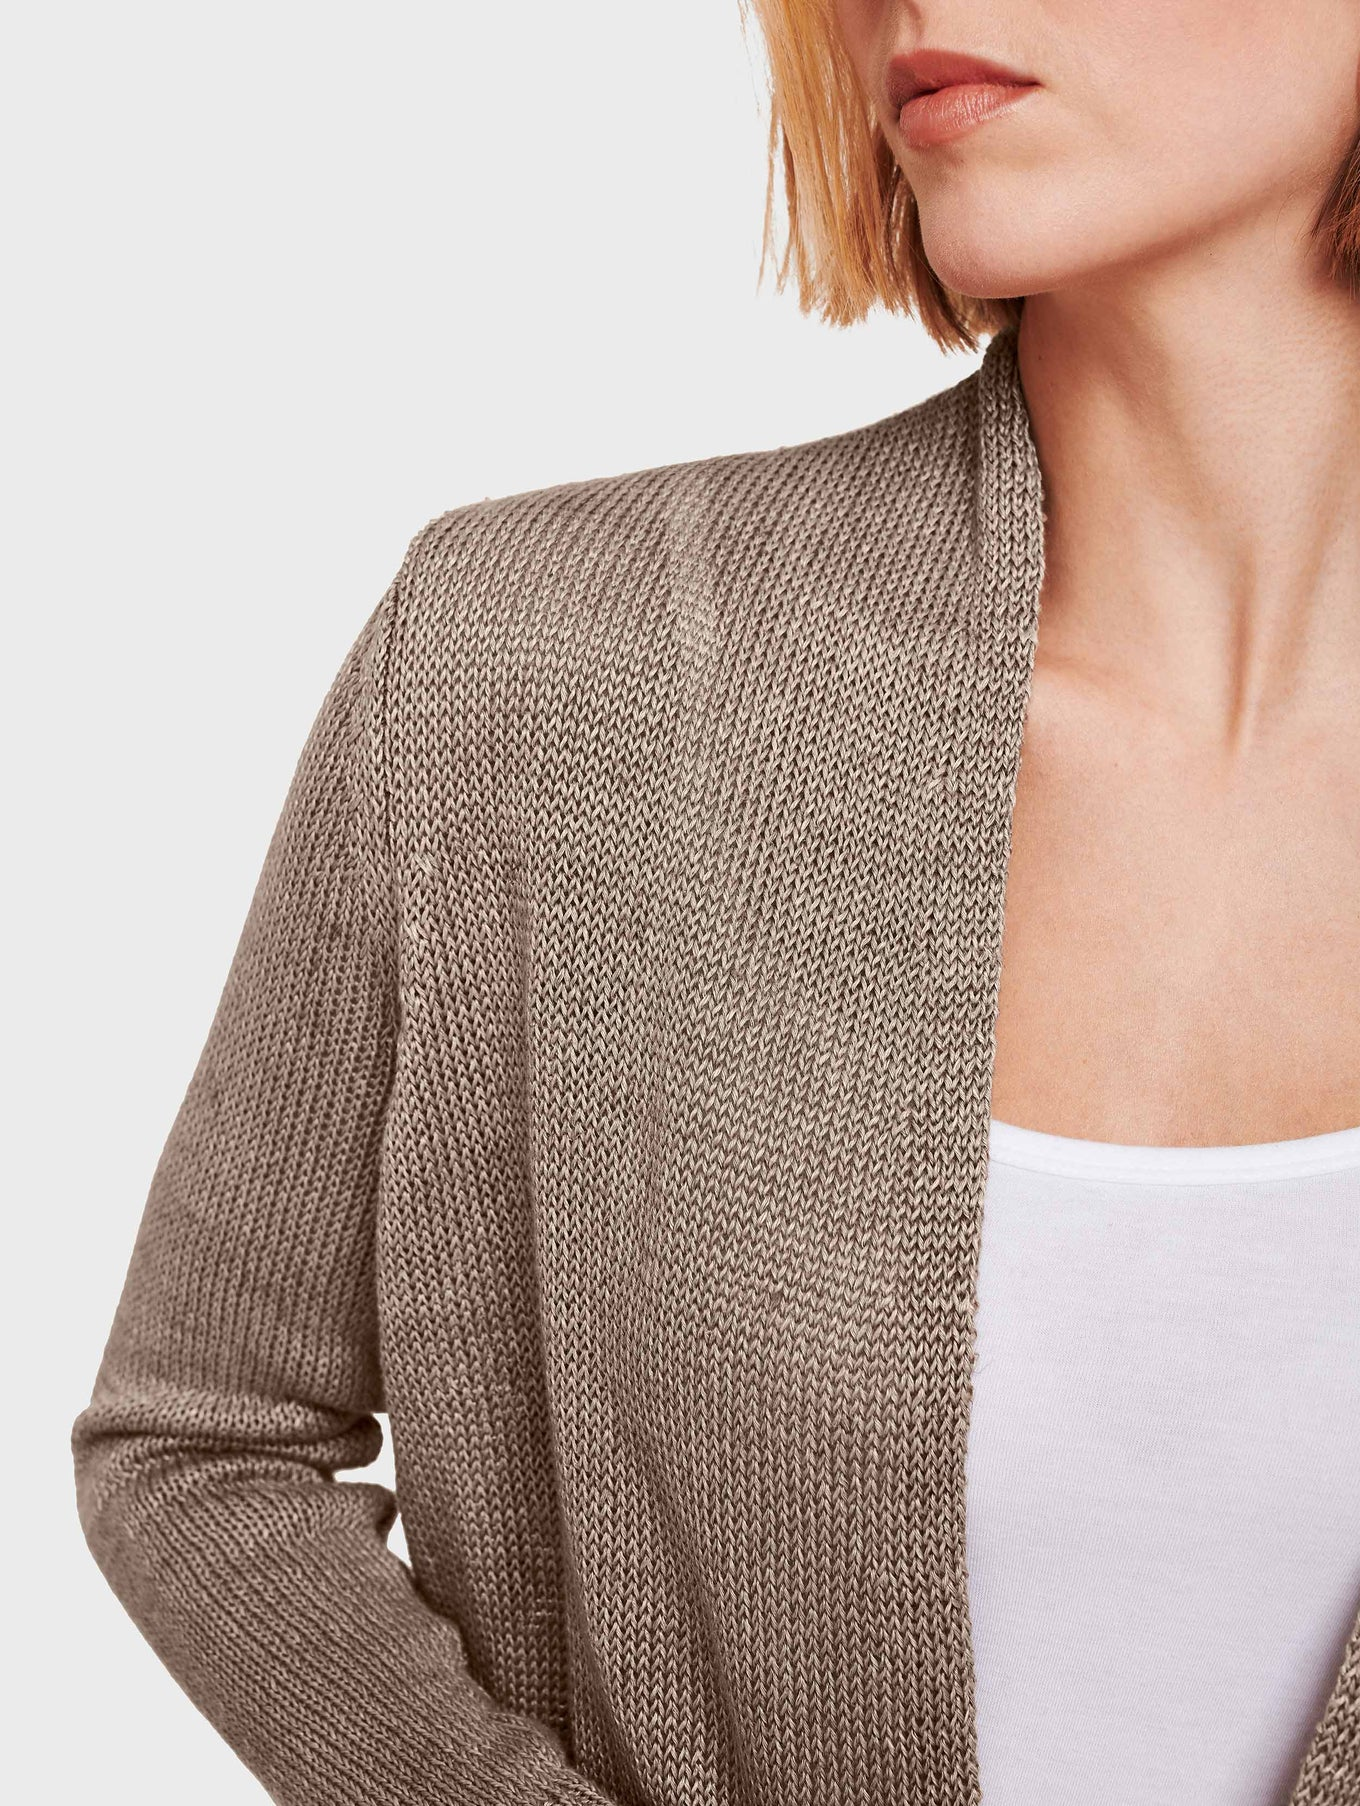 Corded Linen Long Open Cardigan - Taupe Heather - Image 4